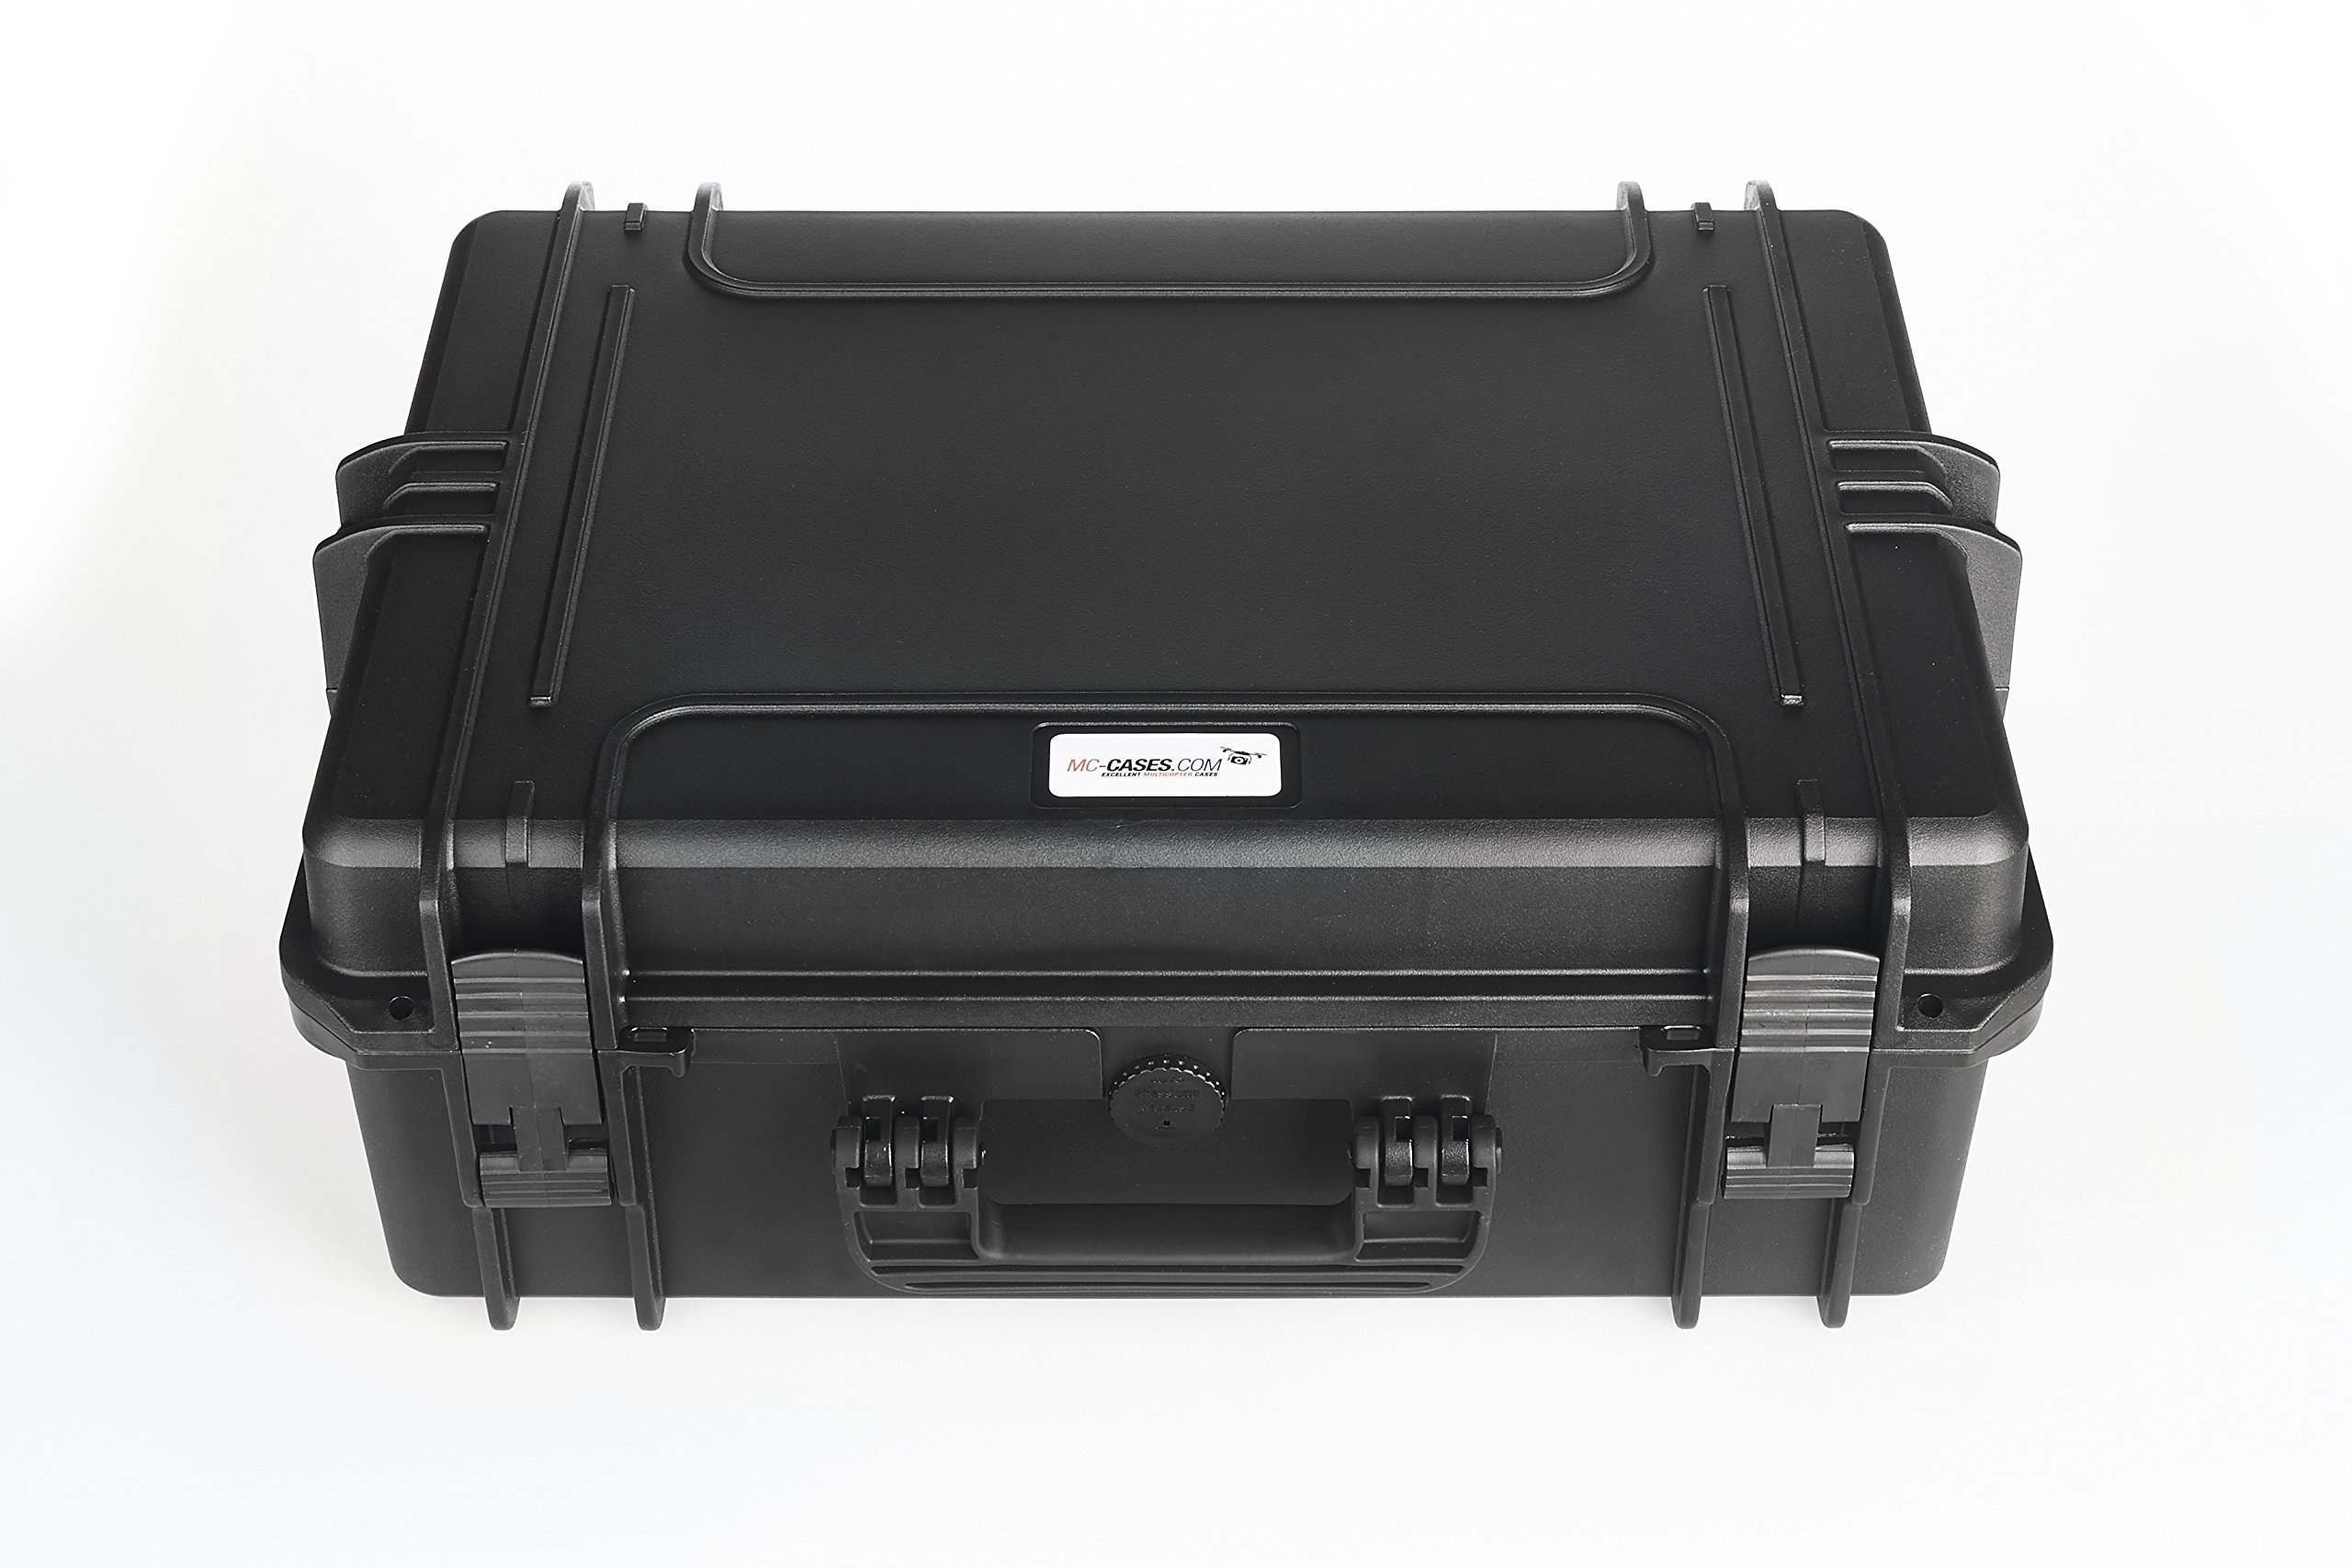 Professional Carrying Case for DJI Mavic AIR - Made in Germany - by MC-CASES (Case for DJI Goggles and DJI Mavic Air) by mc-cases (Image #7)